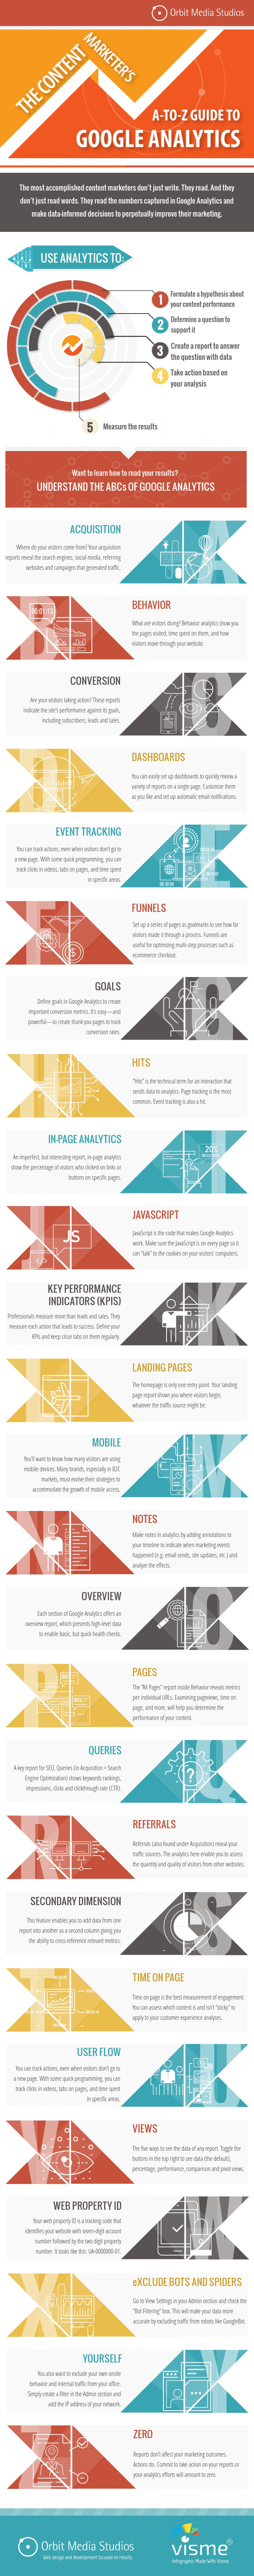 The A-to-Z of Google Analytics for Content Marketers Infographic